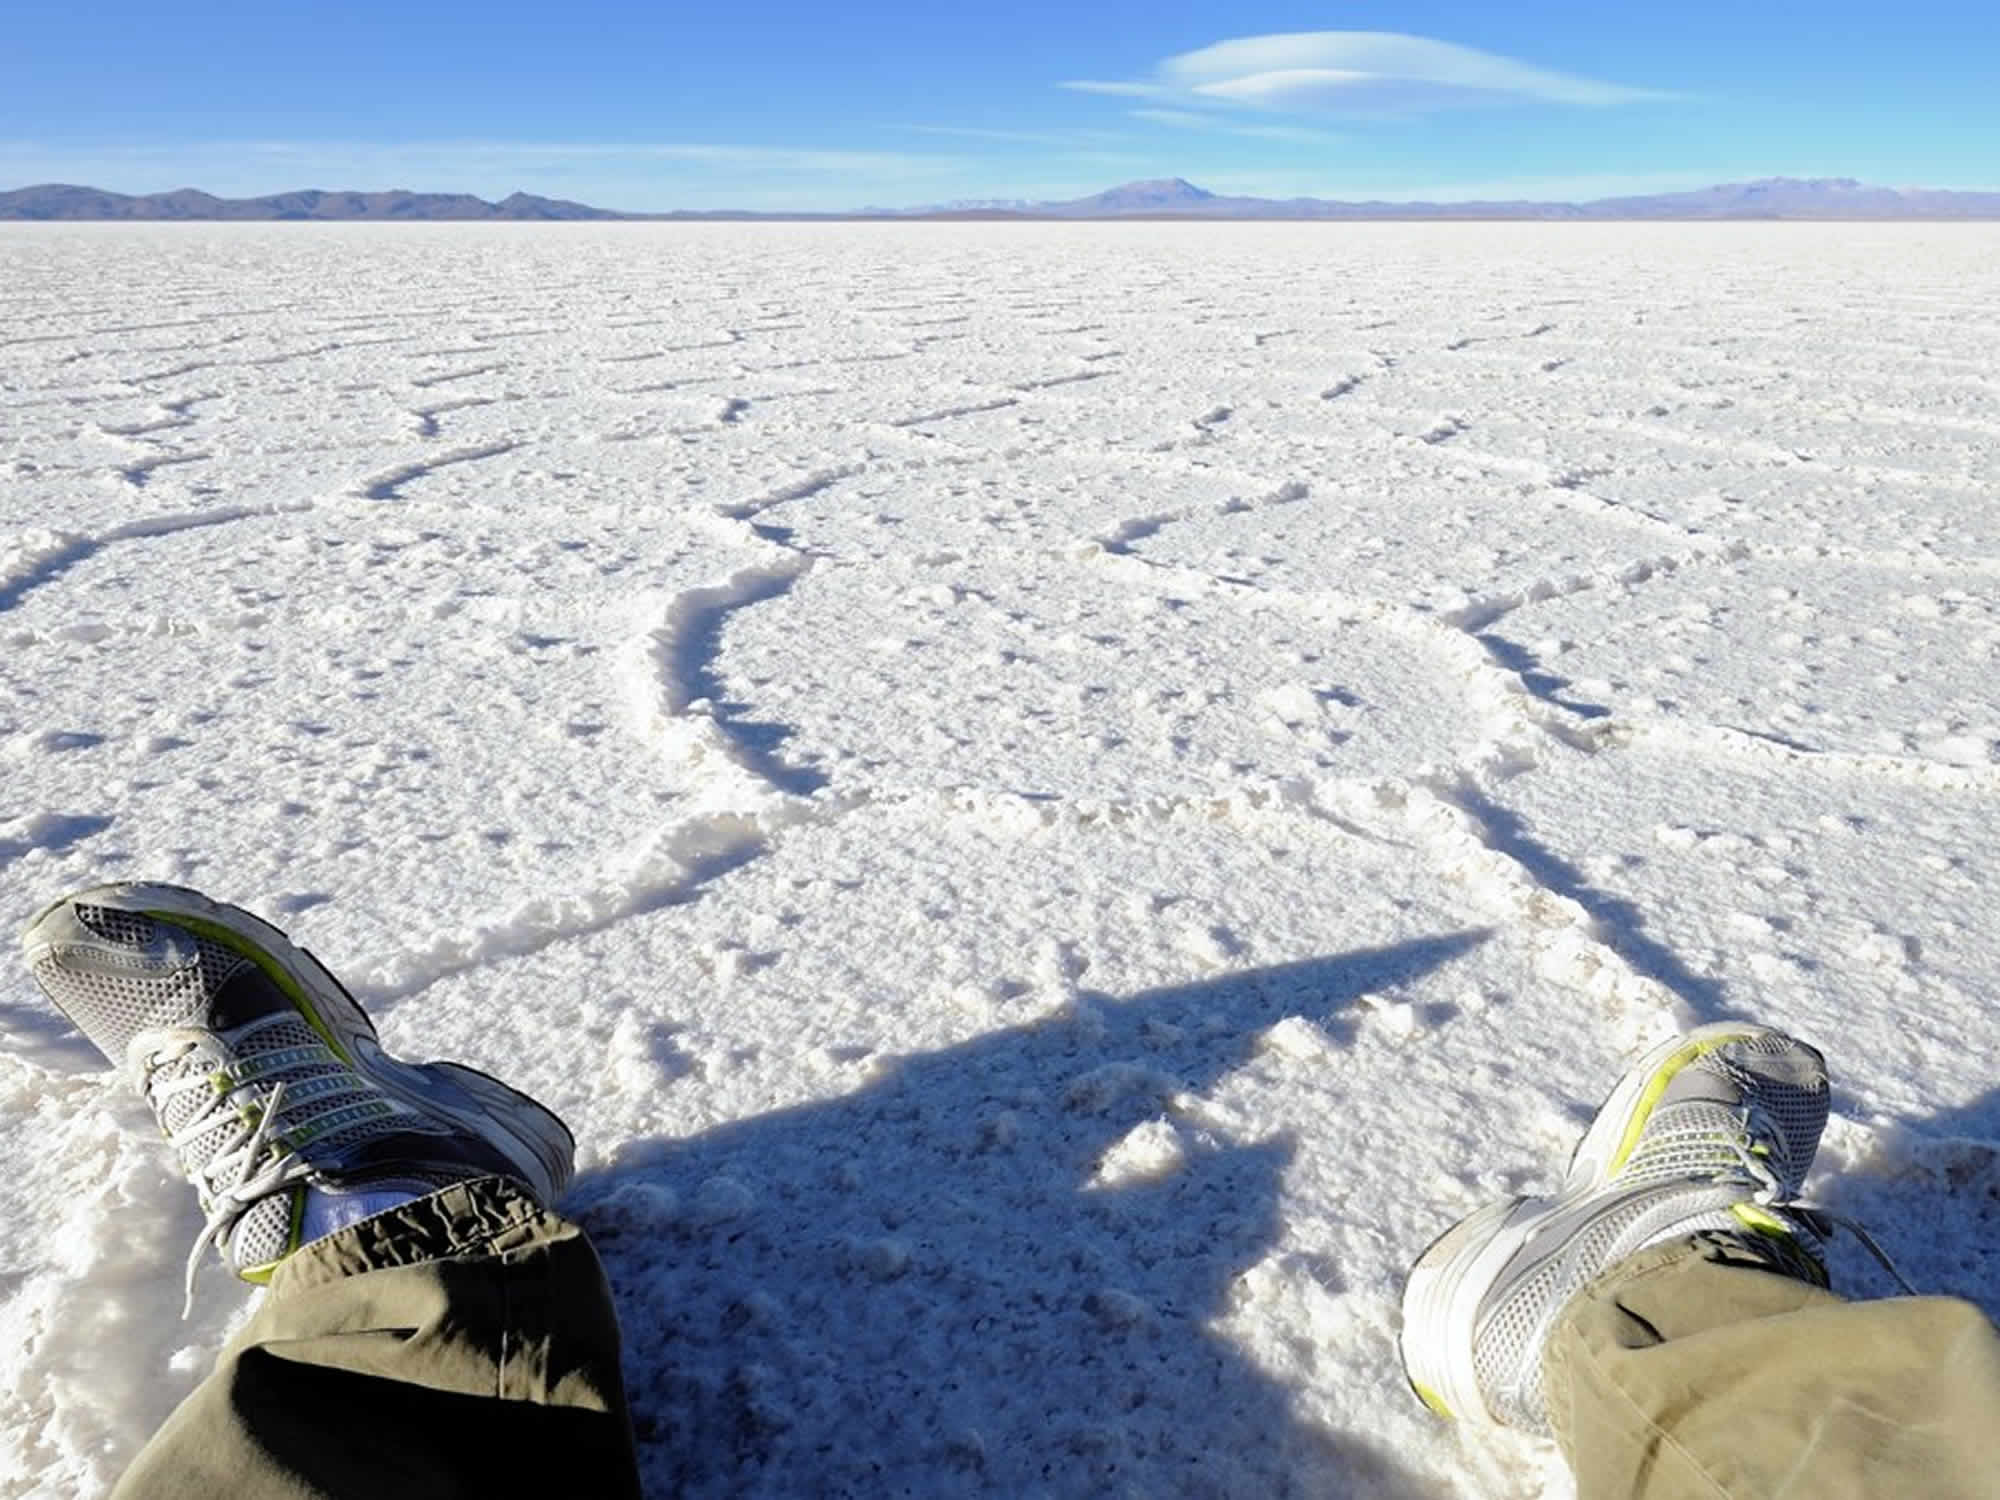 Uyuni Salt Flat - Lagoons and San Pedro de Atacama (Chile), 3 Days, 2 Nights